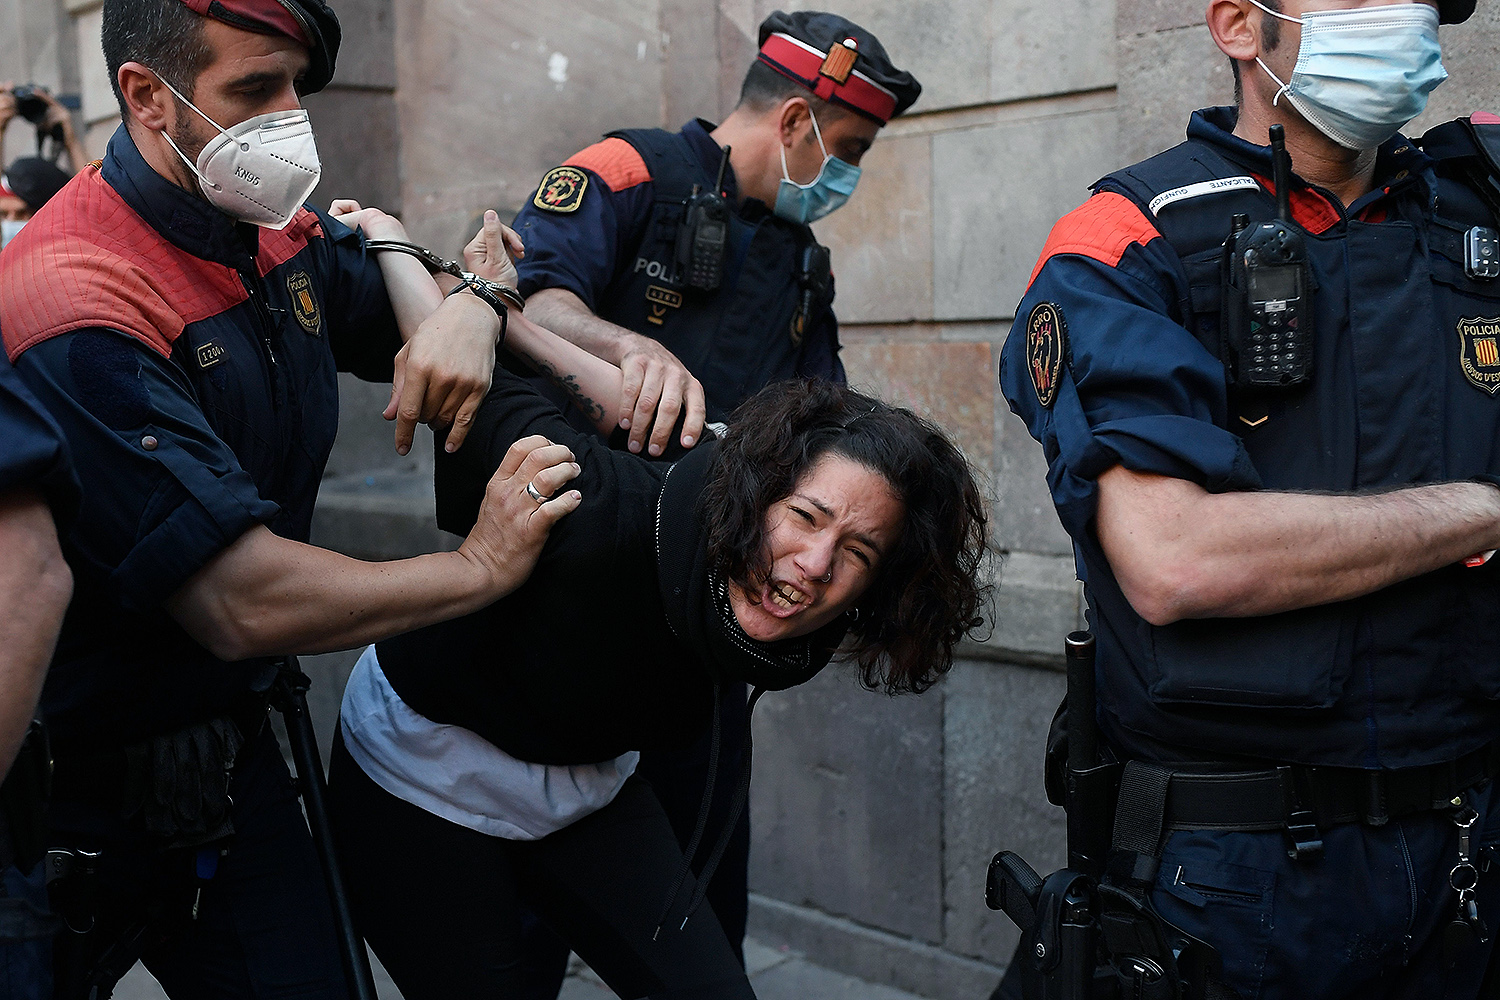 Members of the Catalan regional police grab a protester during a demonstration by the Catalan pro-independence group in Barcelona, Spain, on May 19. JOSEP LAGO/AFP via Getty Images